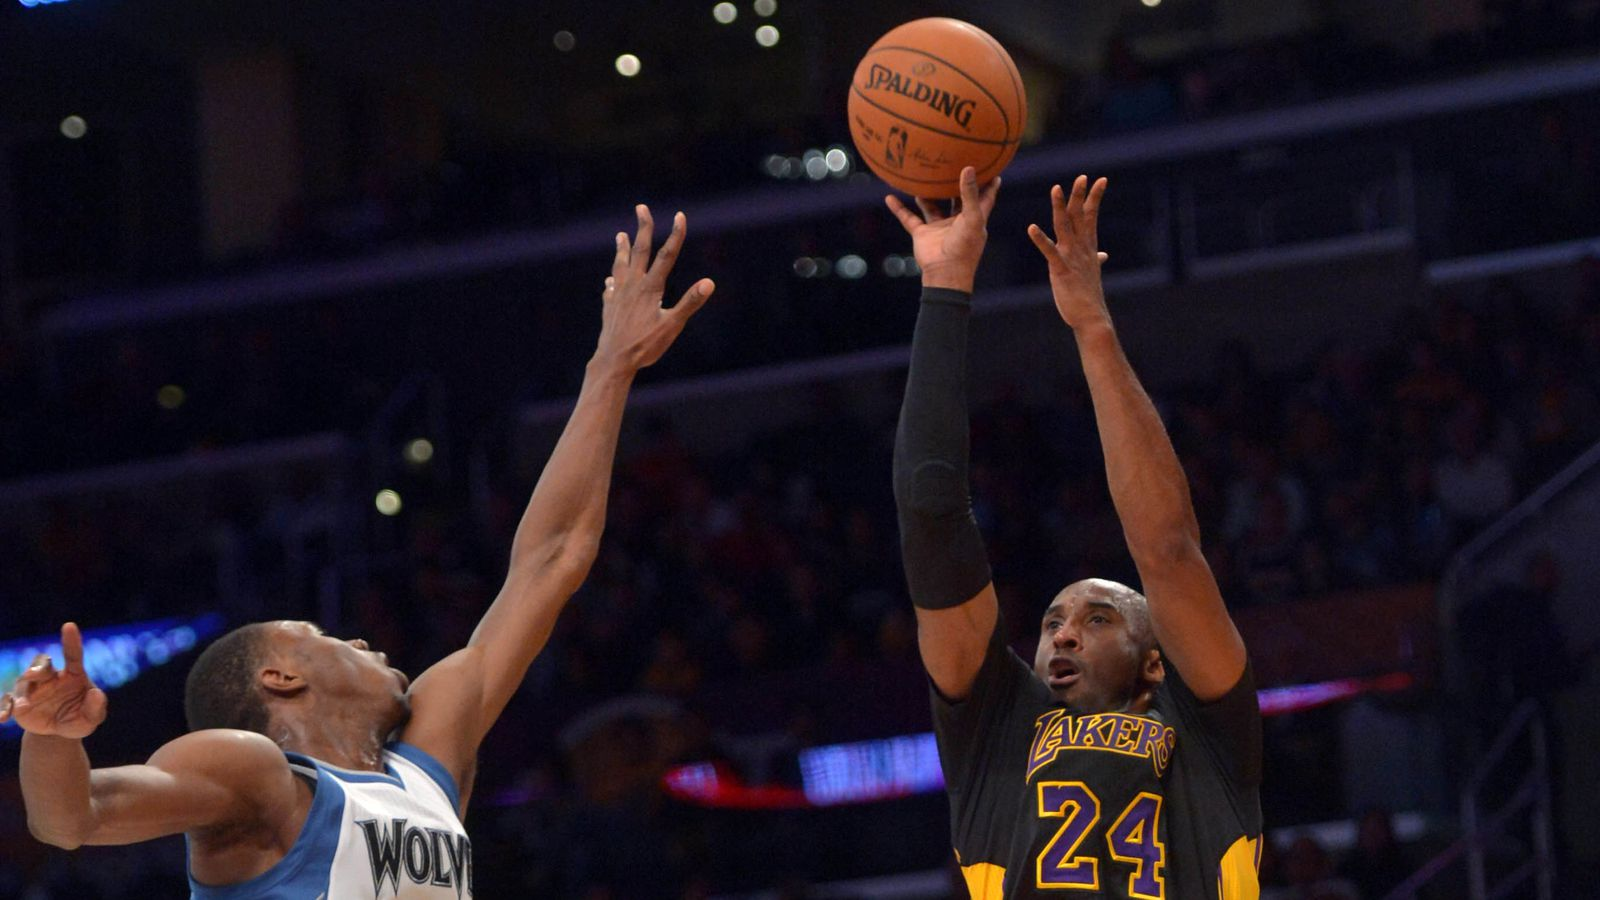 Lakers Vs. Timberwolves Preview: This Is Kobe Bryant's